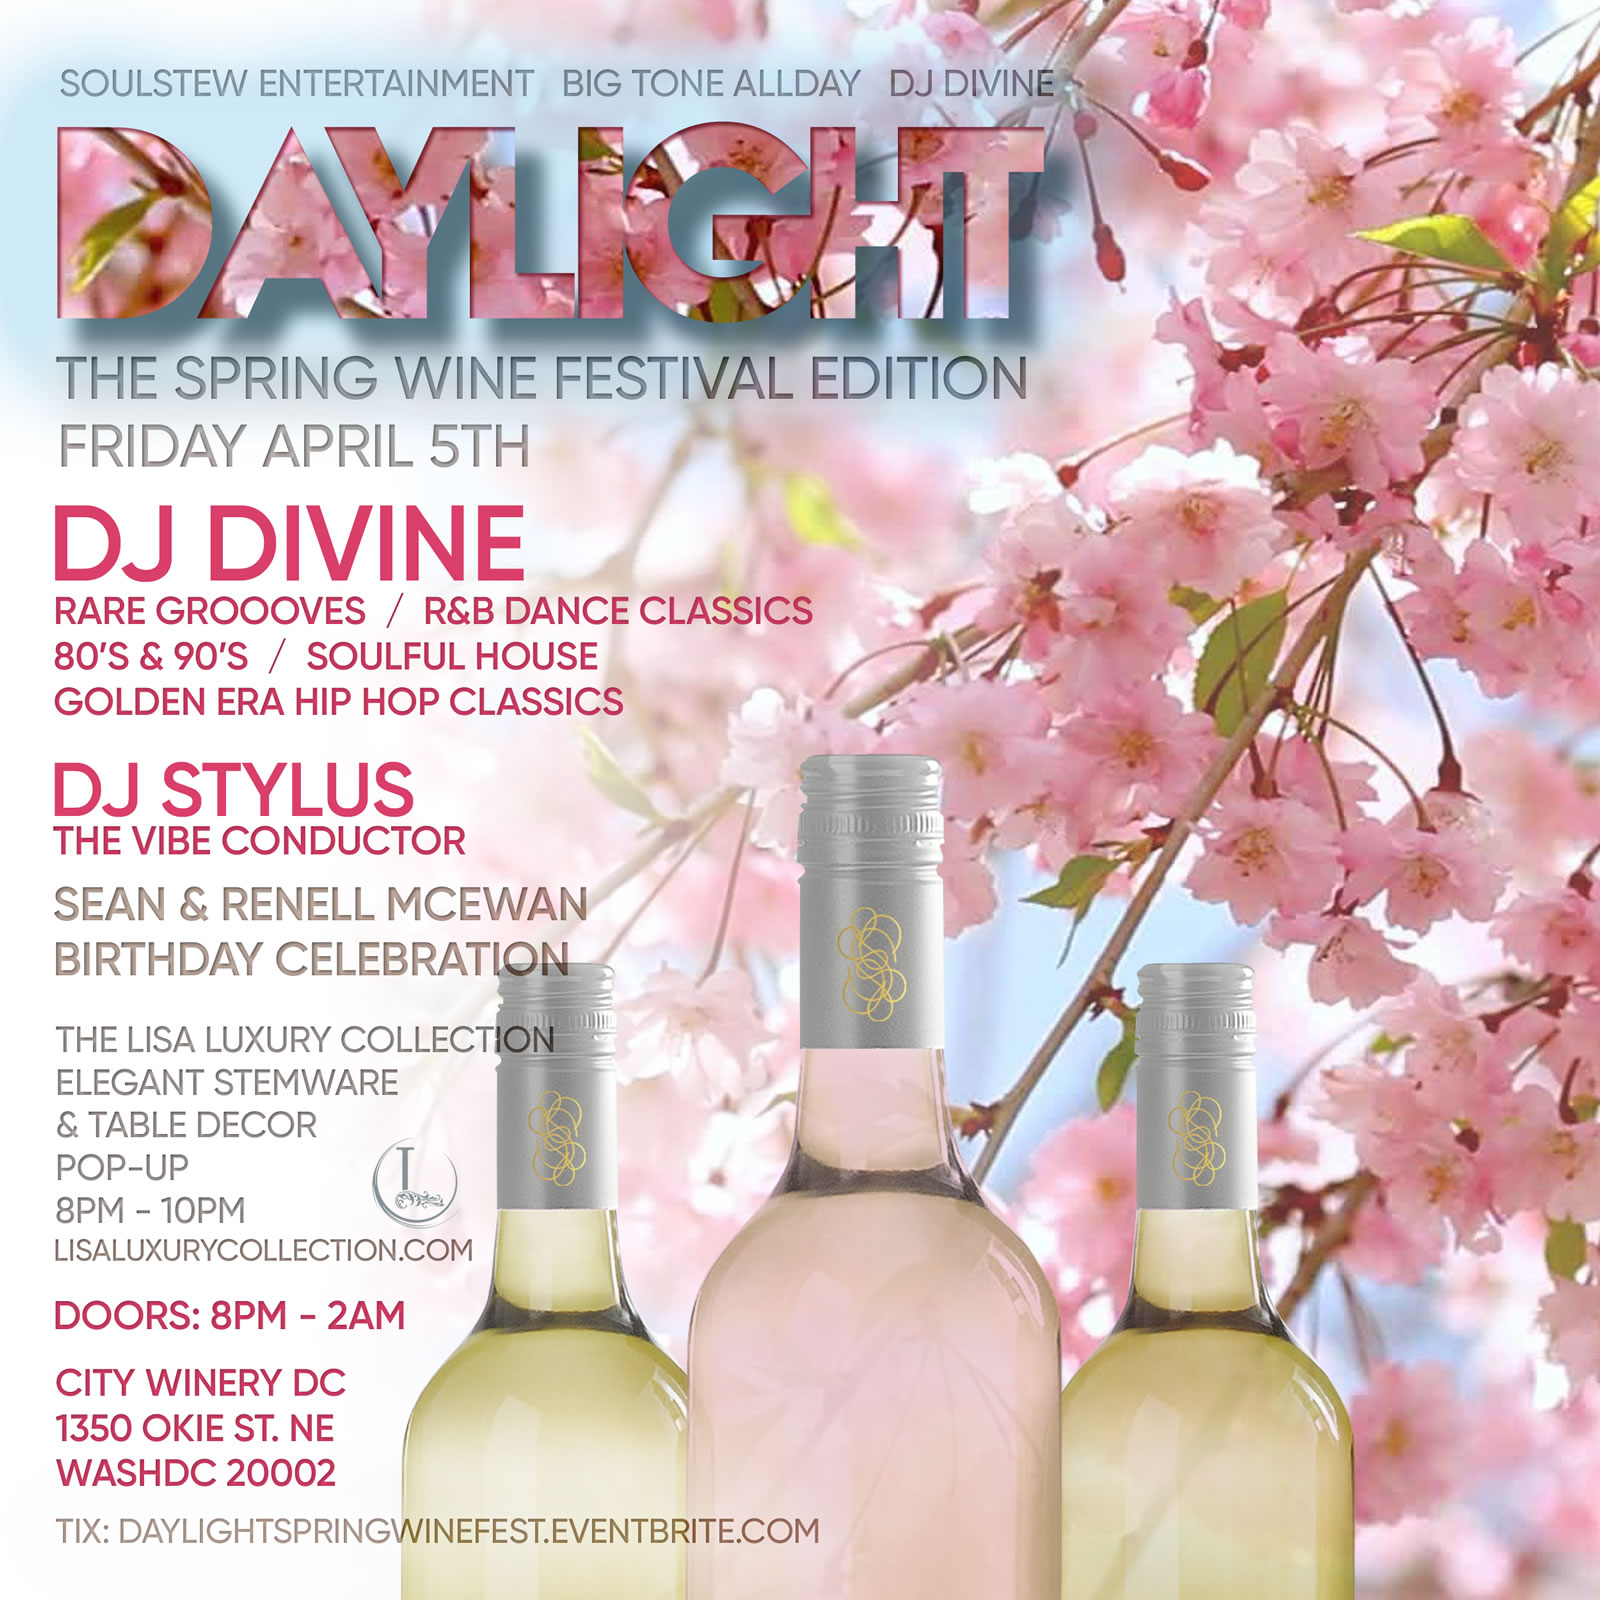 Daylight Spring Wine Flight Fest, Fri. 4/5